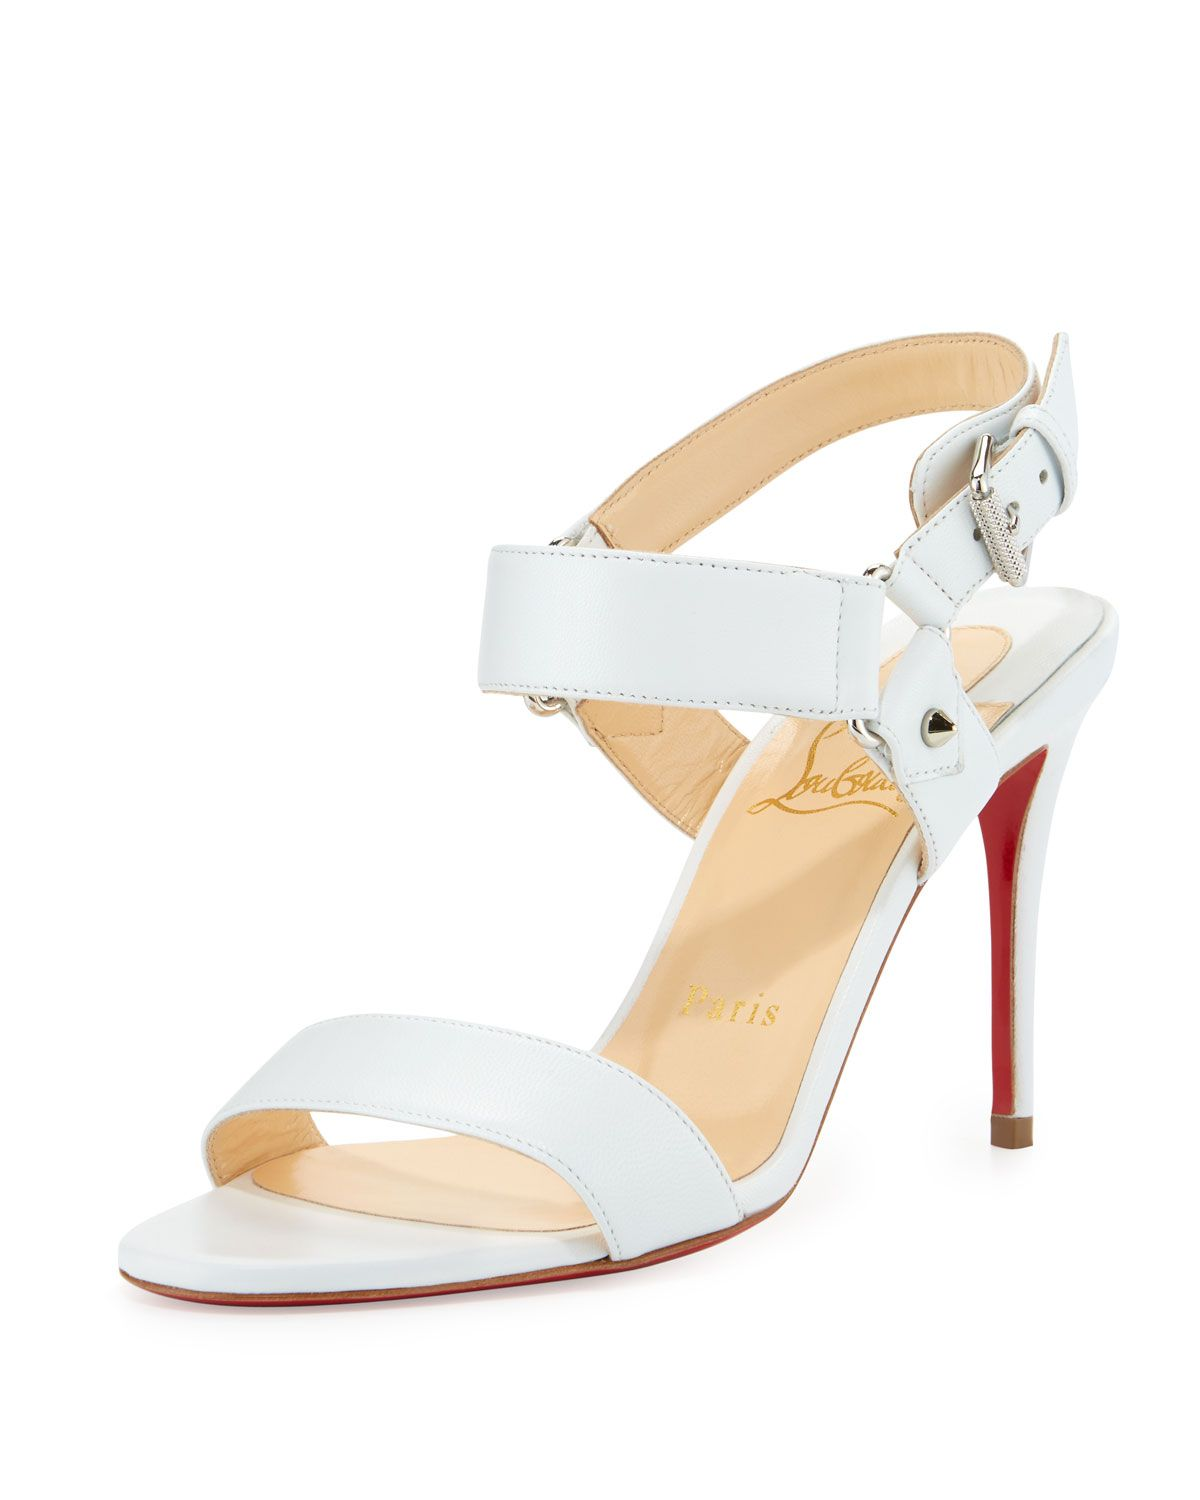 843804cfc2c Christian Louboutin Sova Leather 85mm Red Sole Sandal